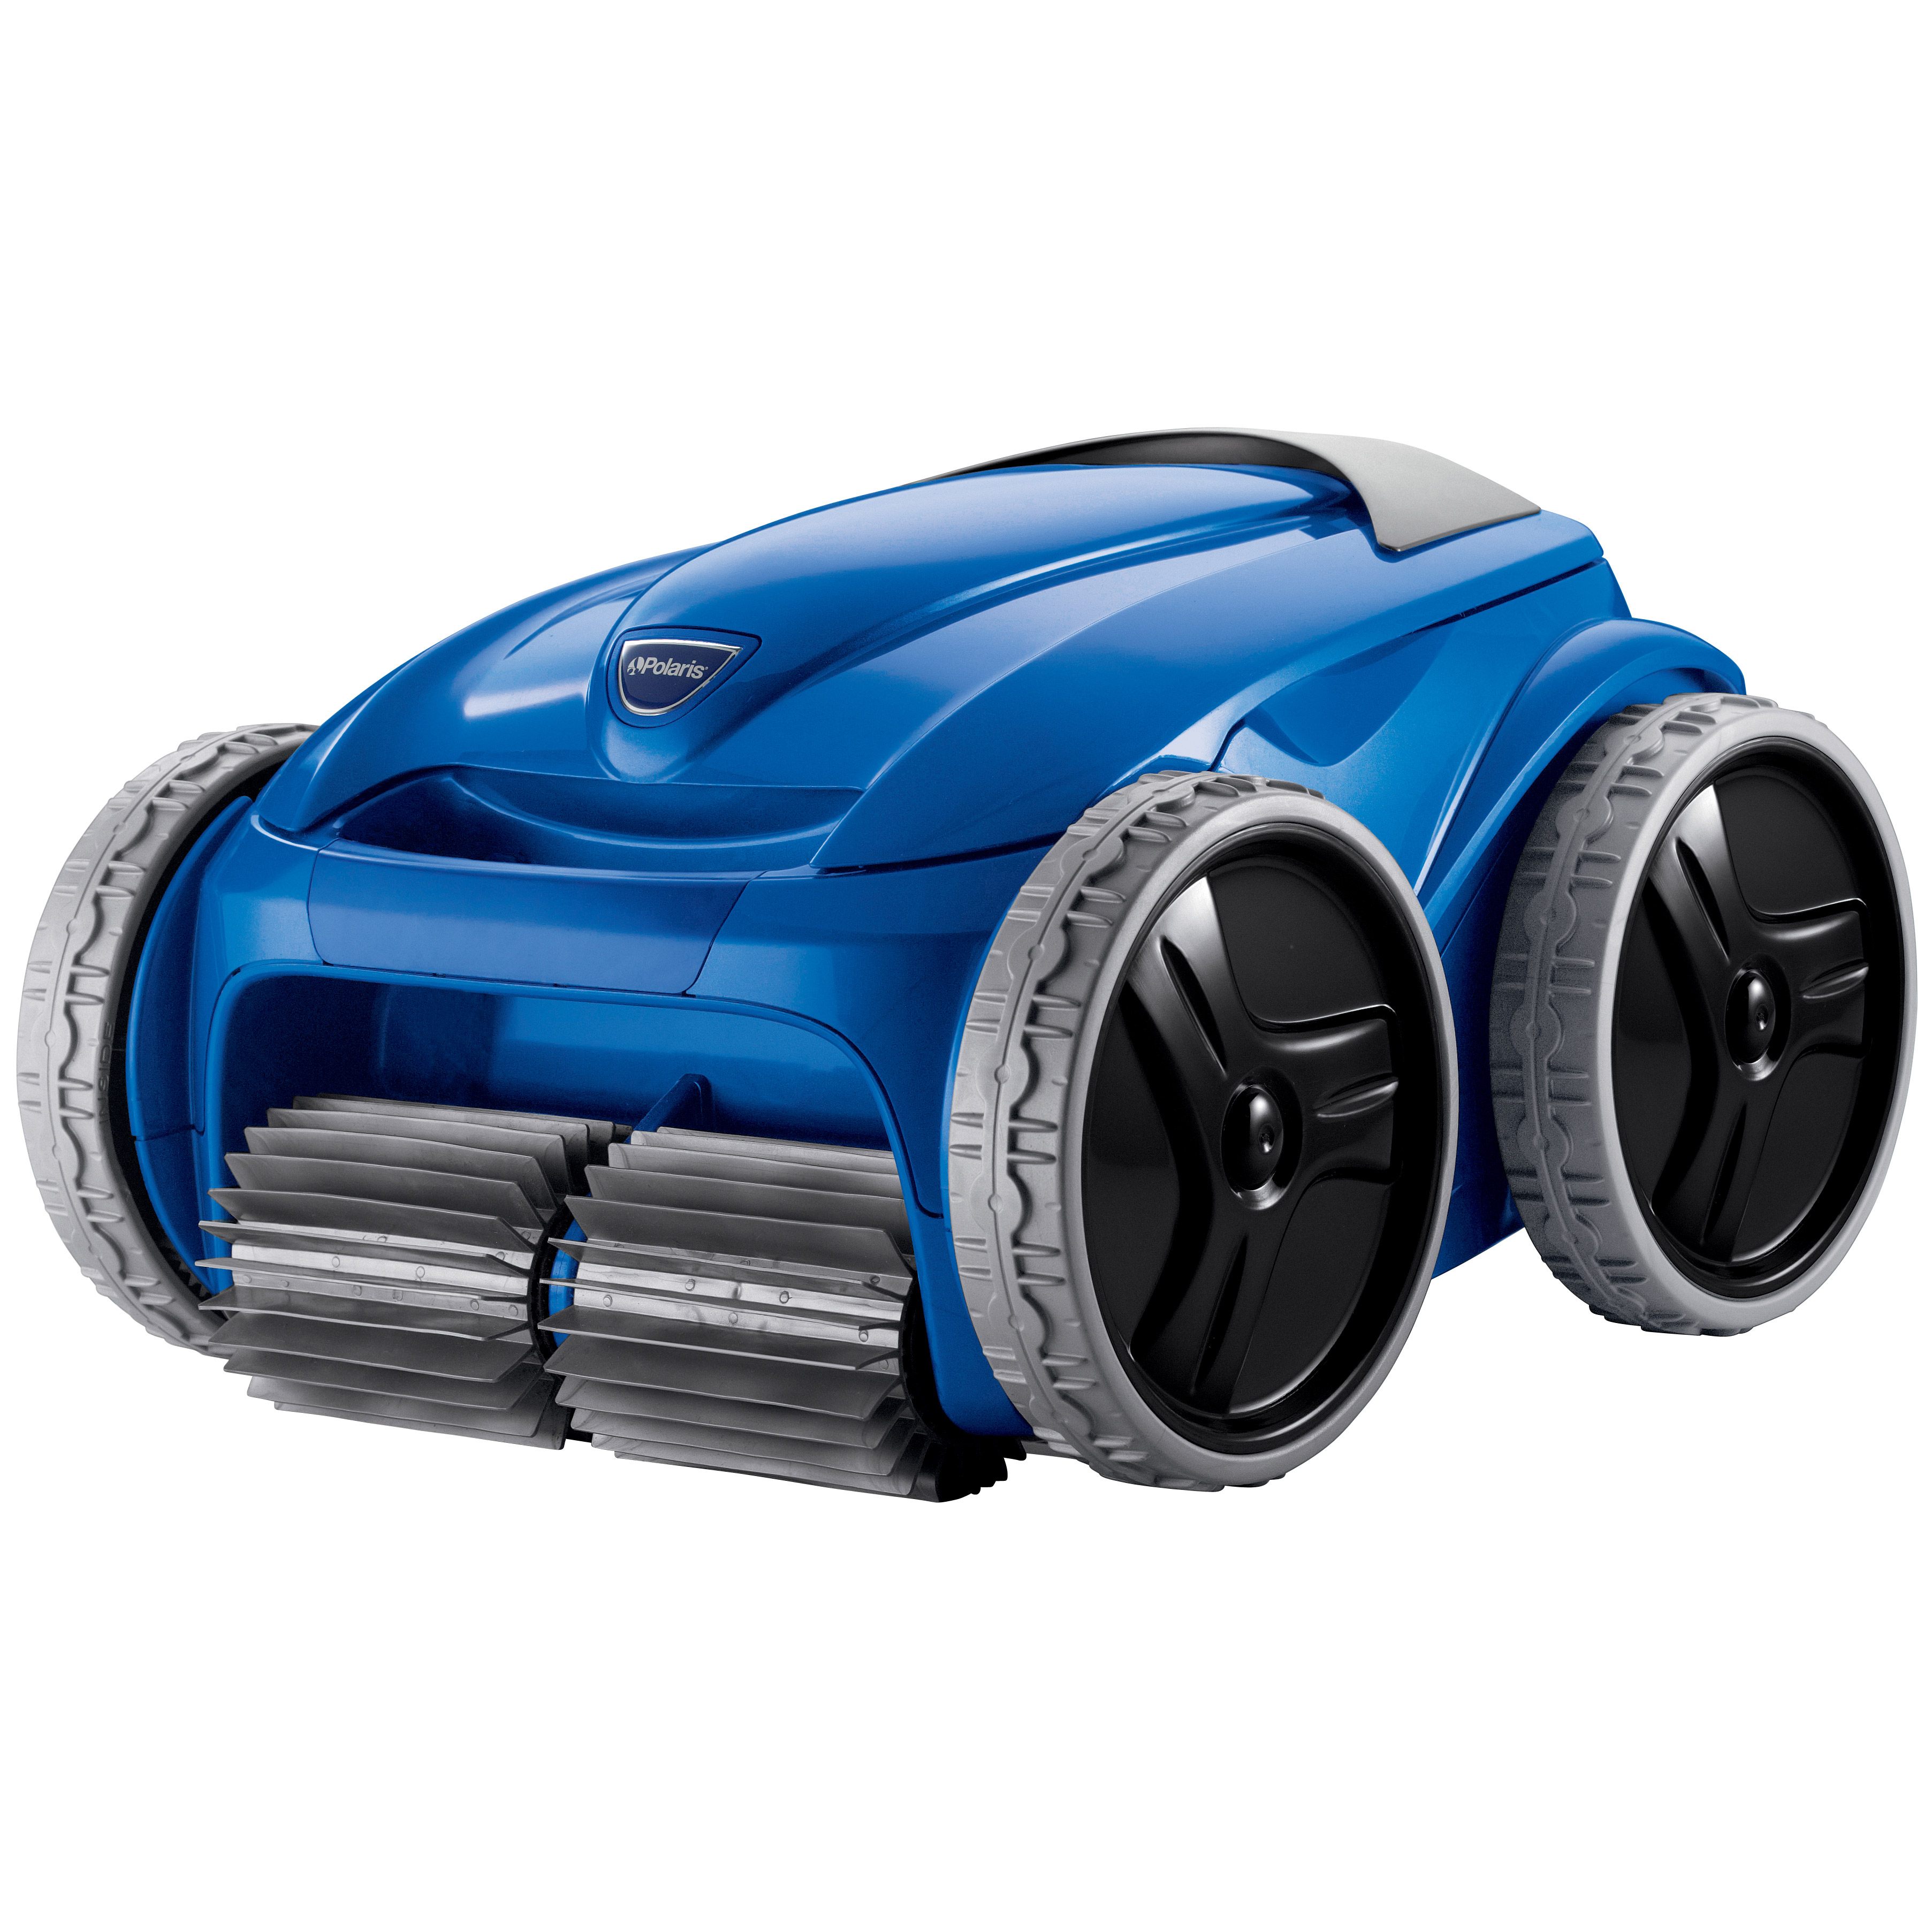 Polaris 9550 Sport Robotic In Ground Pool Cleaner